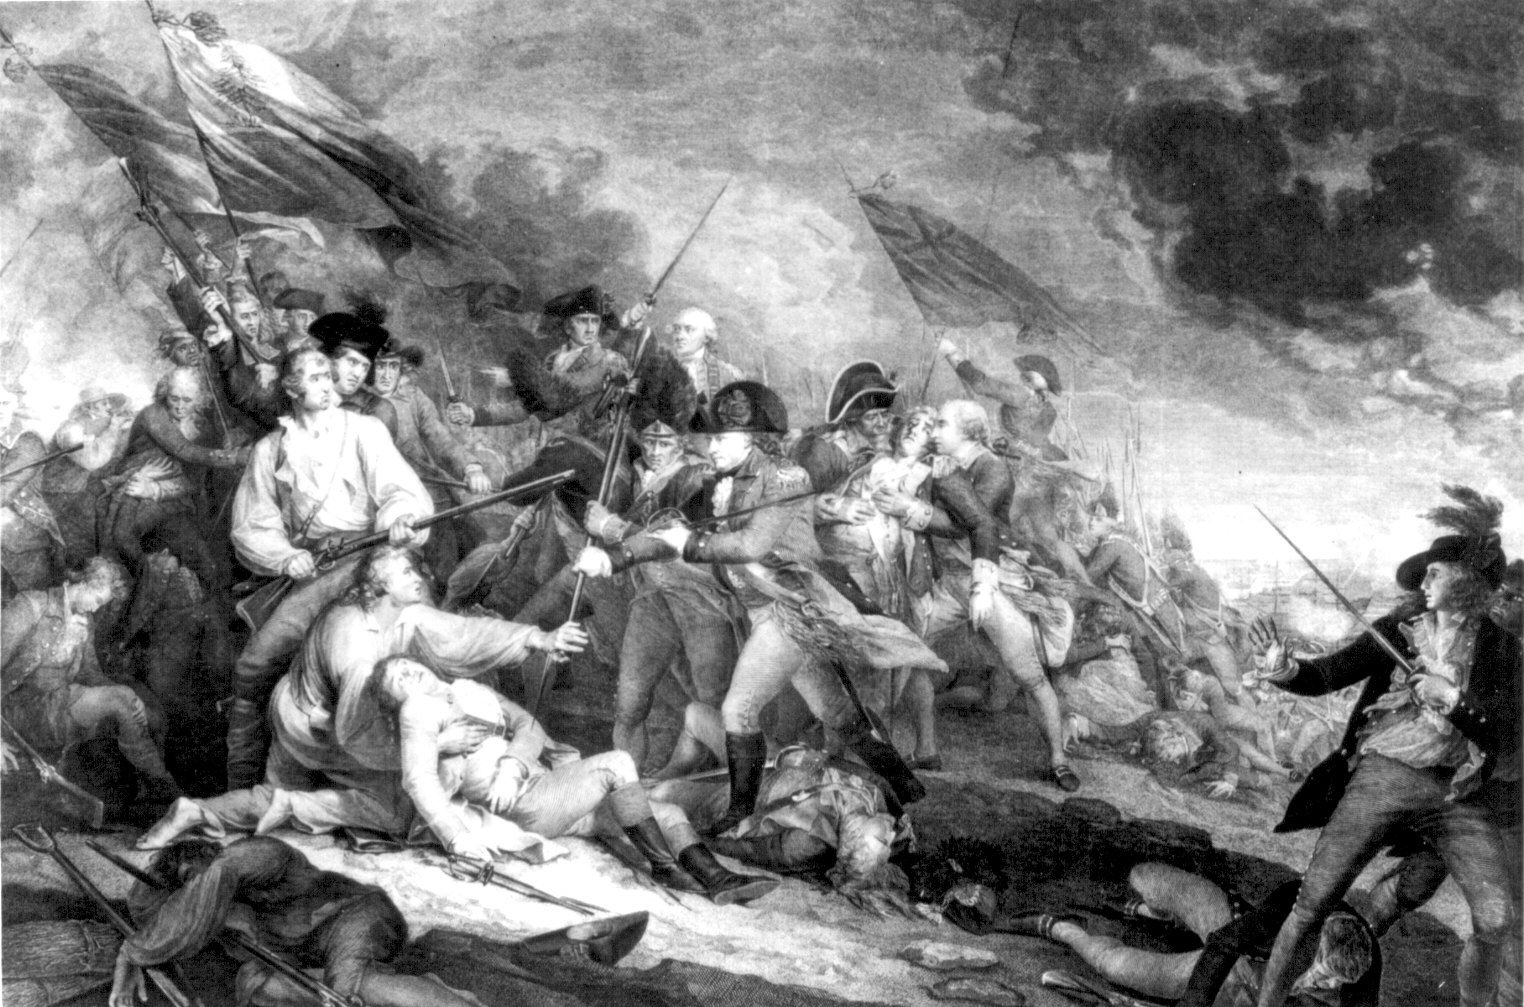 Essay On Influence Of Media Battle Of Bunker Hill Essay Oxford Aasc Photo Essay Cigarette Smoking Essay also Essay On Women Role In Society Battle Of Bunker Hill Engraving From Painting By John Trumbull  Effects Of Alcohol Essay